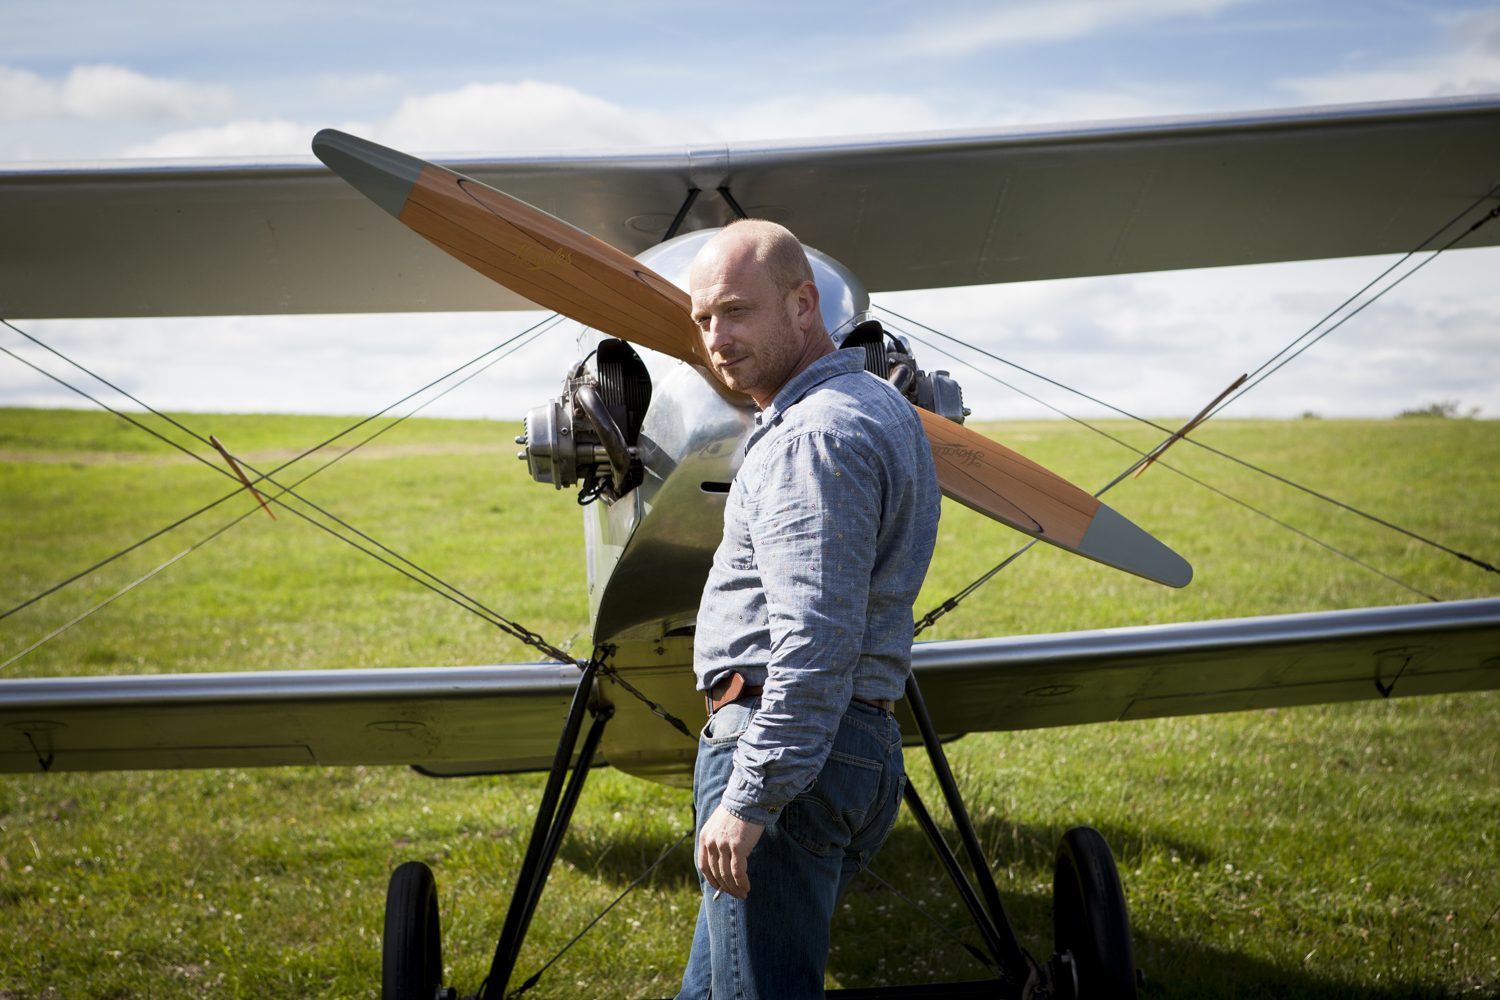 Rupert with his aeroplane